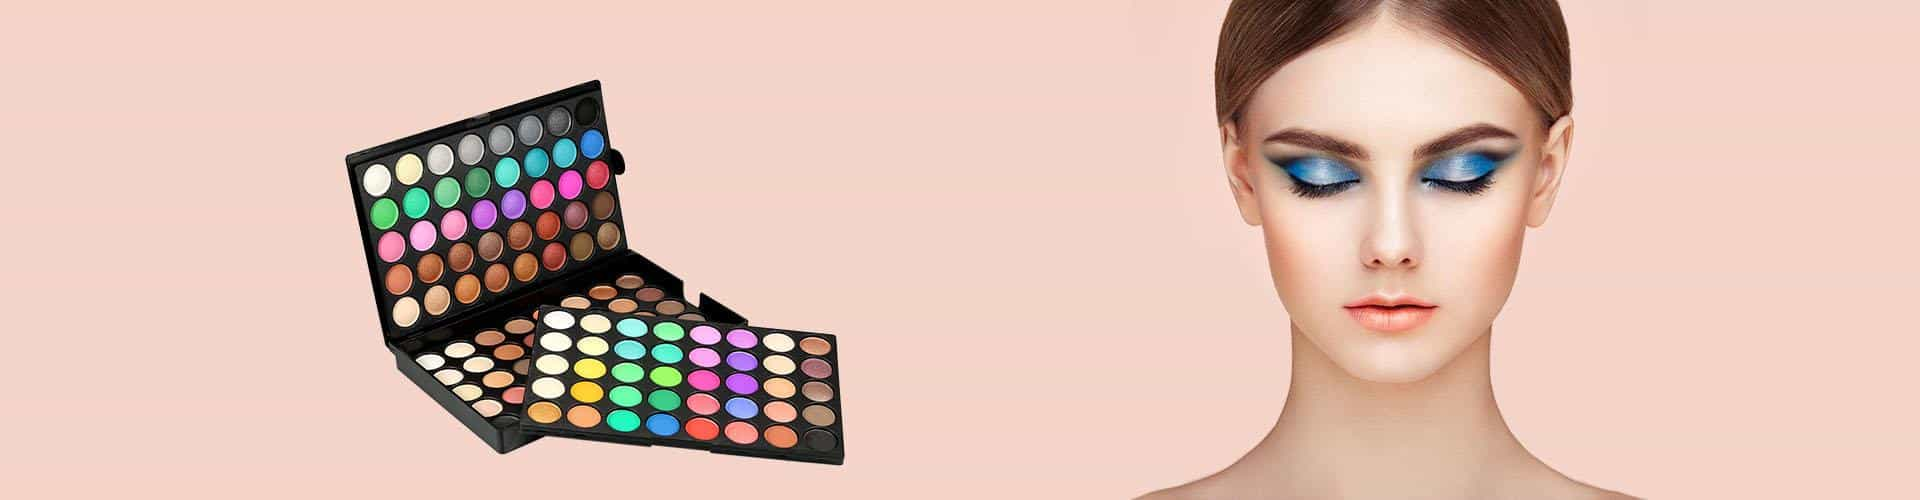 Best Eyeshadow Palette 2019 – Buyer's Guide and Reviews